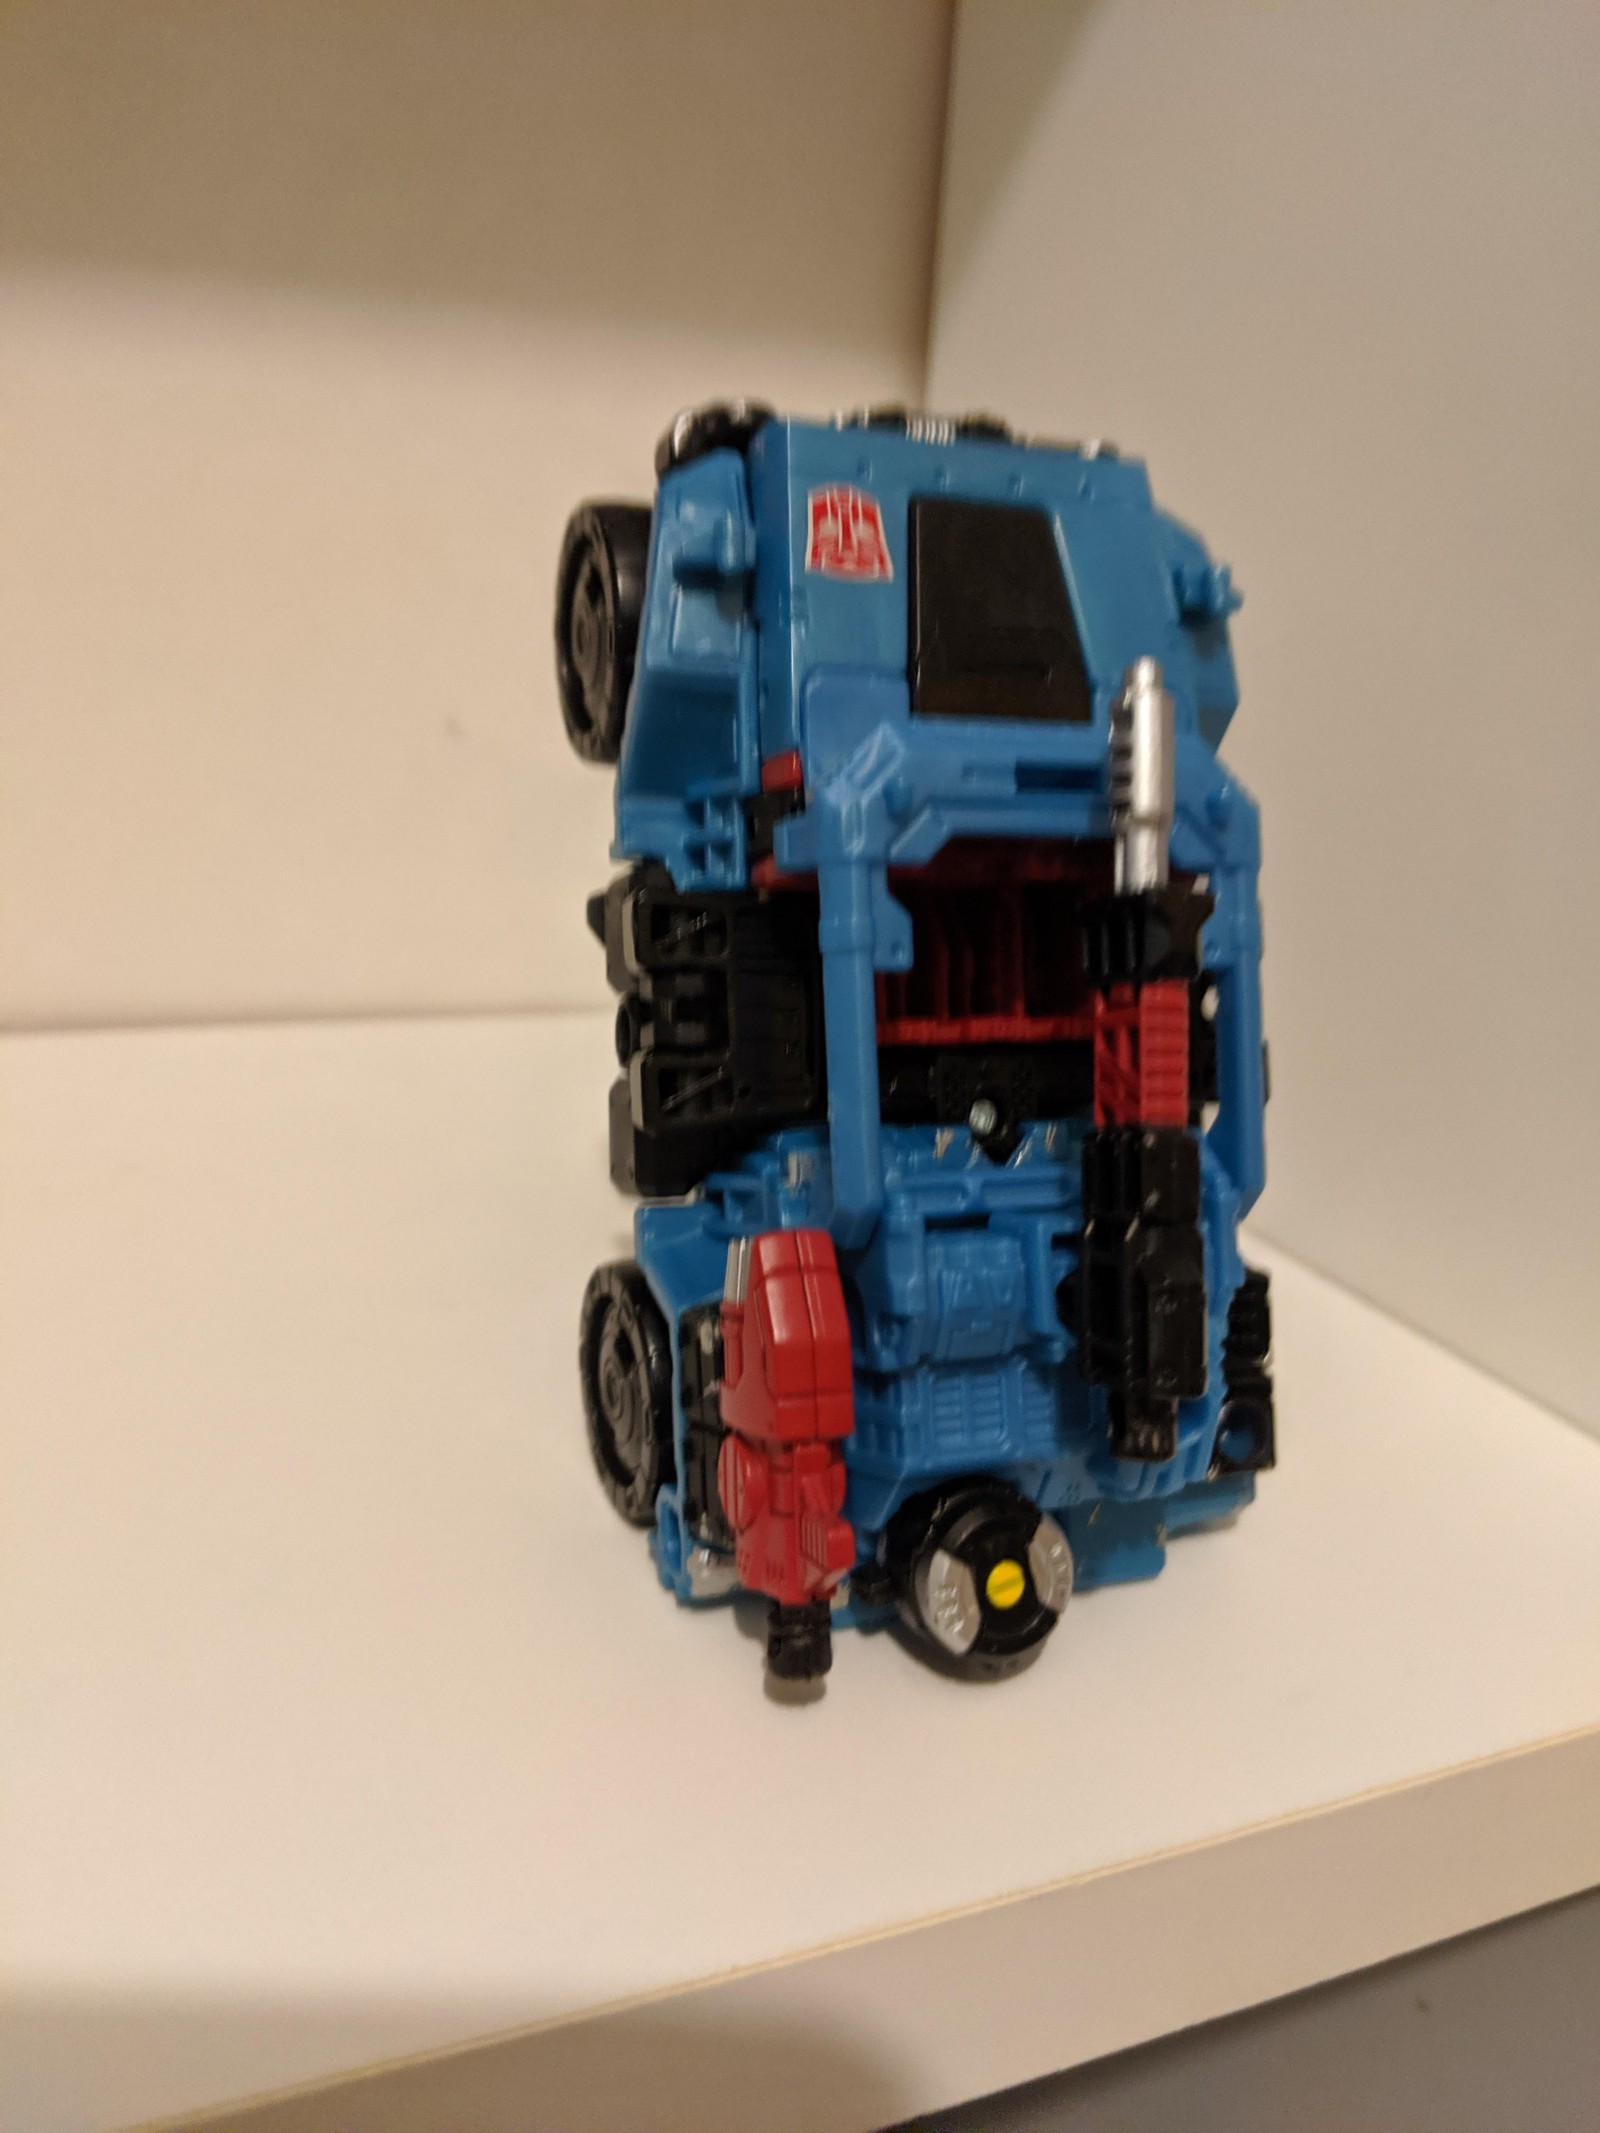 Transformers News: Transformers Generations War for Cybertron Siege Deluxe Class Autobot Hot Shot Revealed